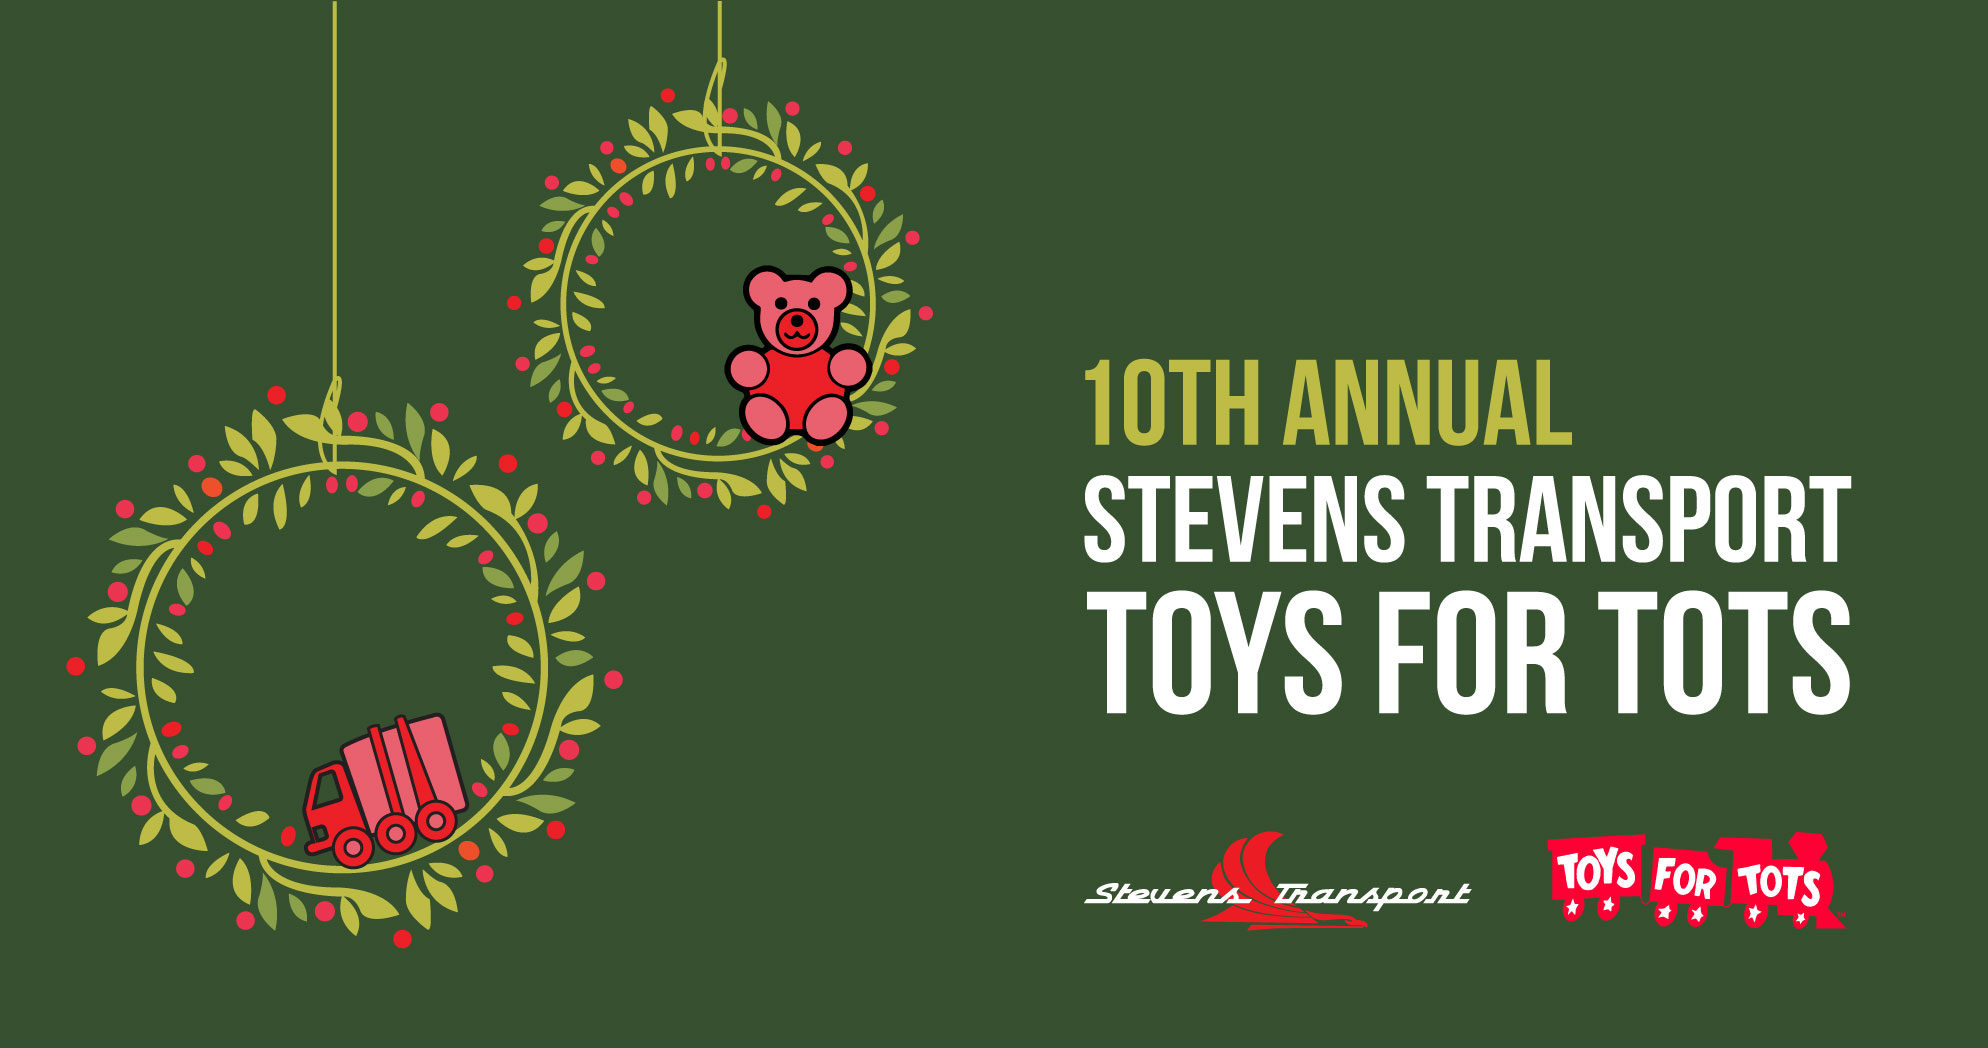 Toys For Tots Drive : Stevens transport kicks off th annual toys for tots drive